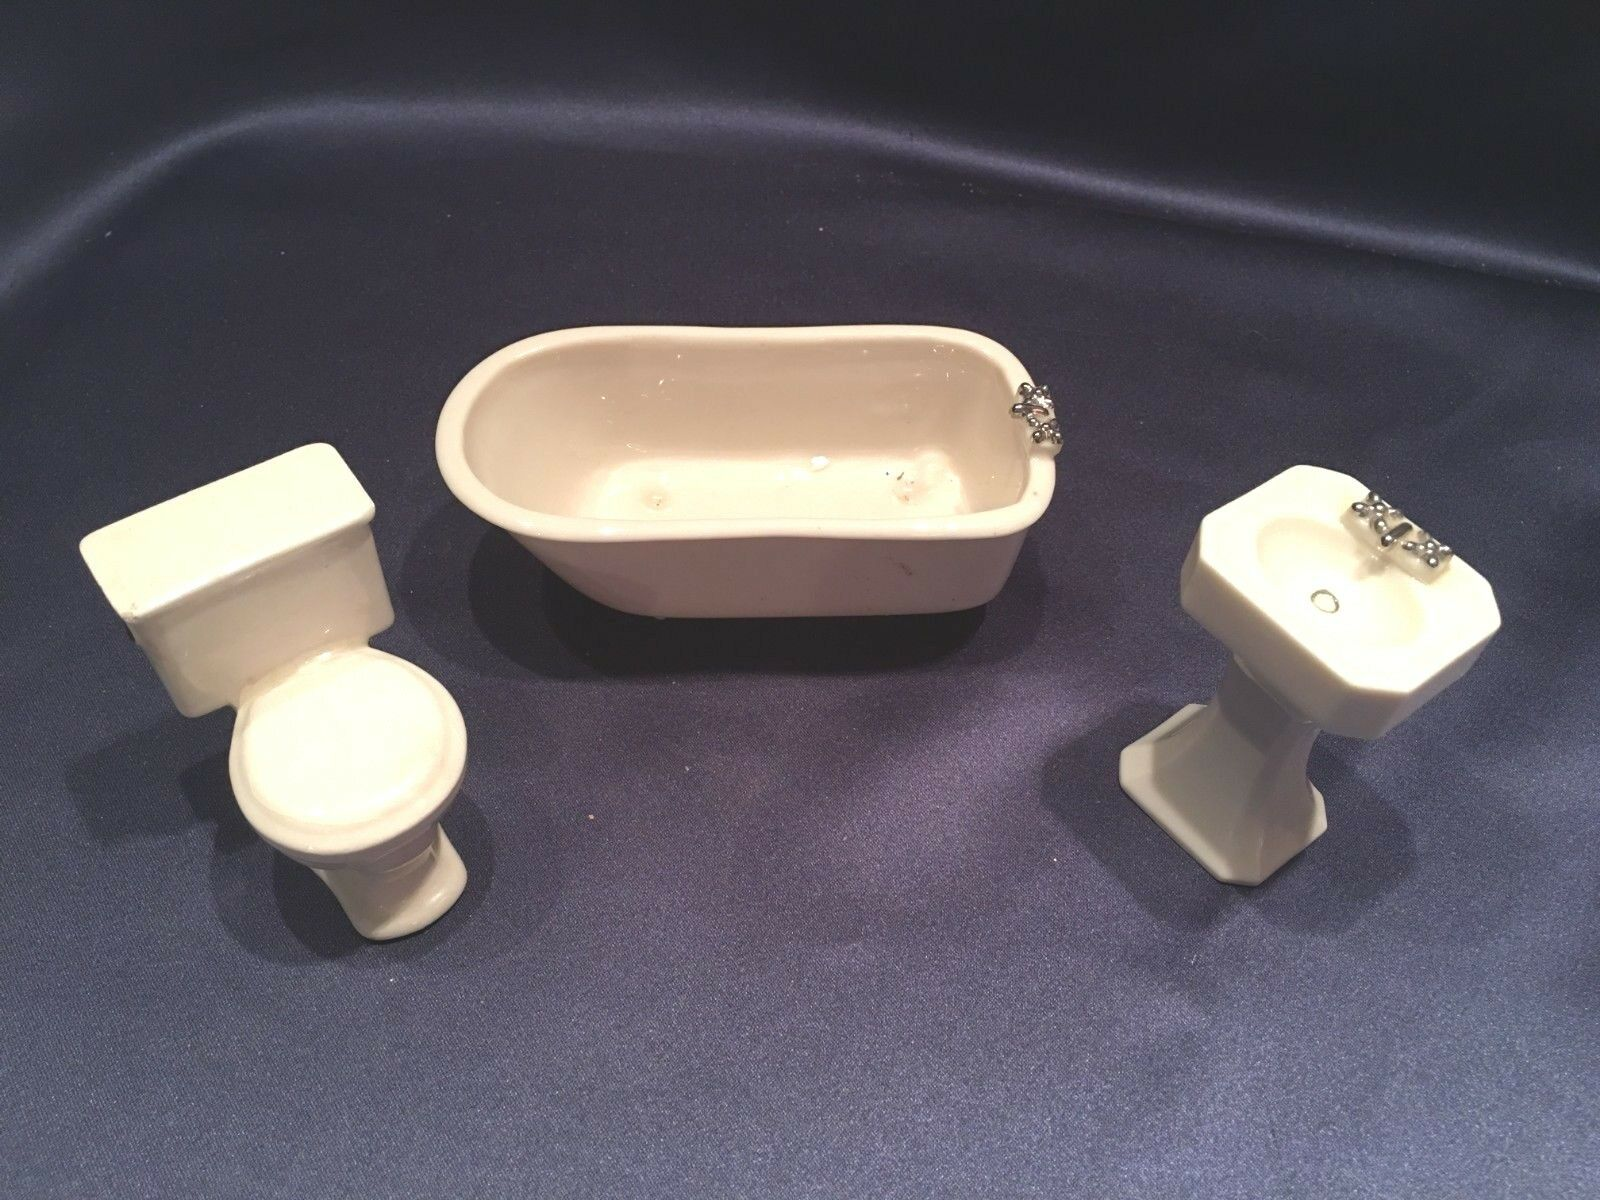 Vintage  3 pc bambolahouse Miniature Porcelain Bathroom Fixtures Footed Tub Ped Sink  prezzi più convenienti